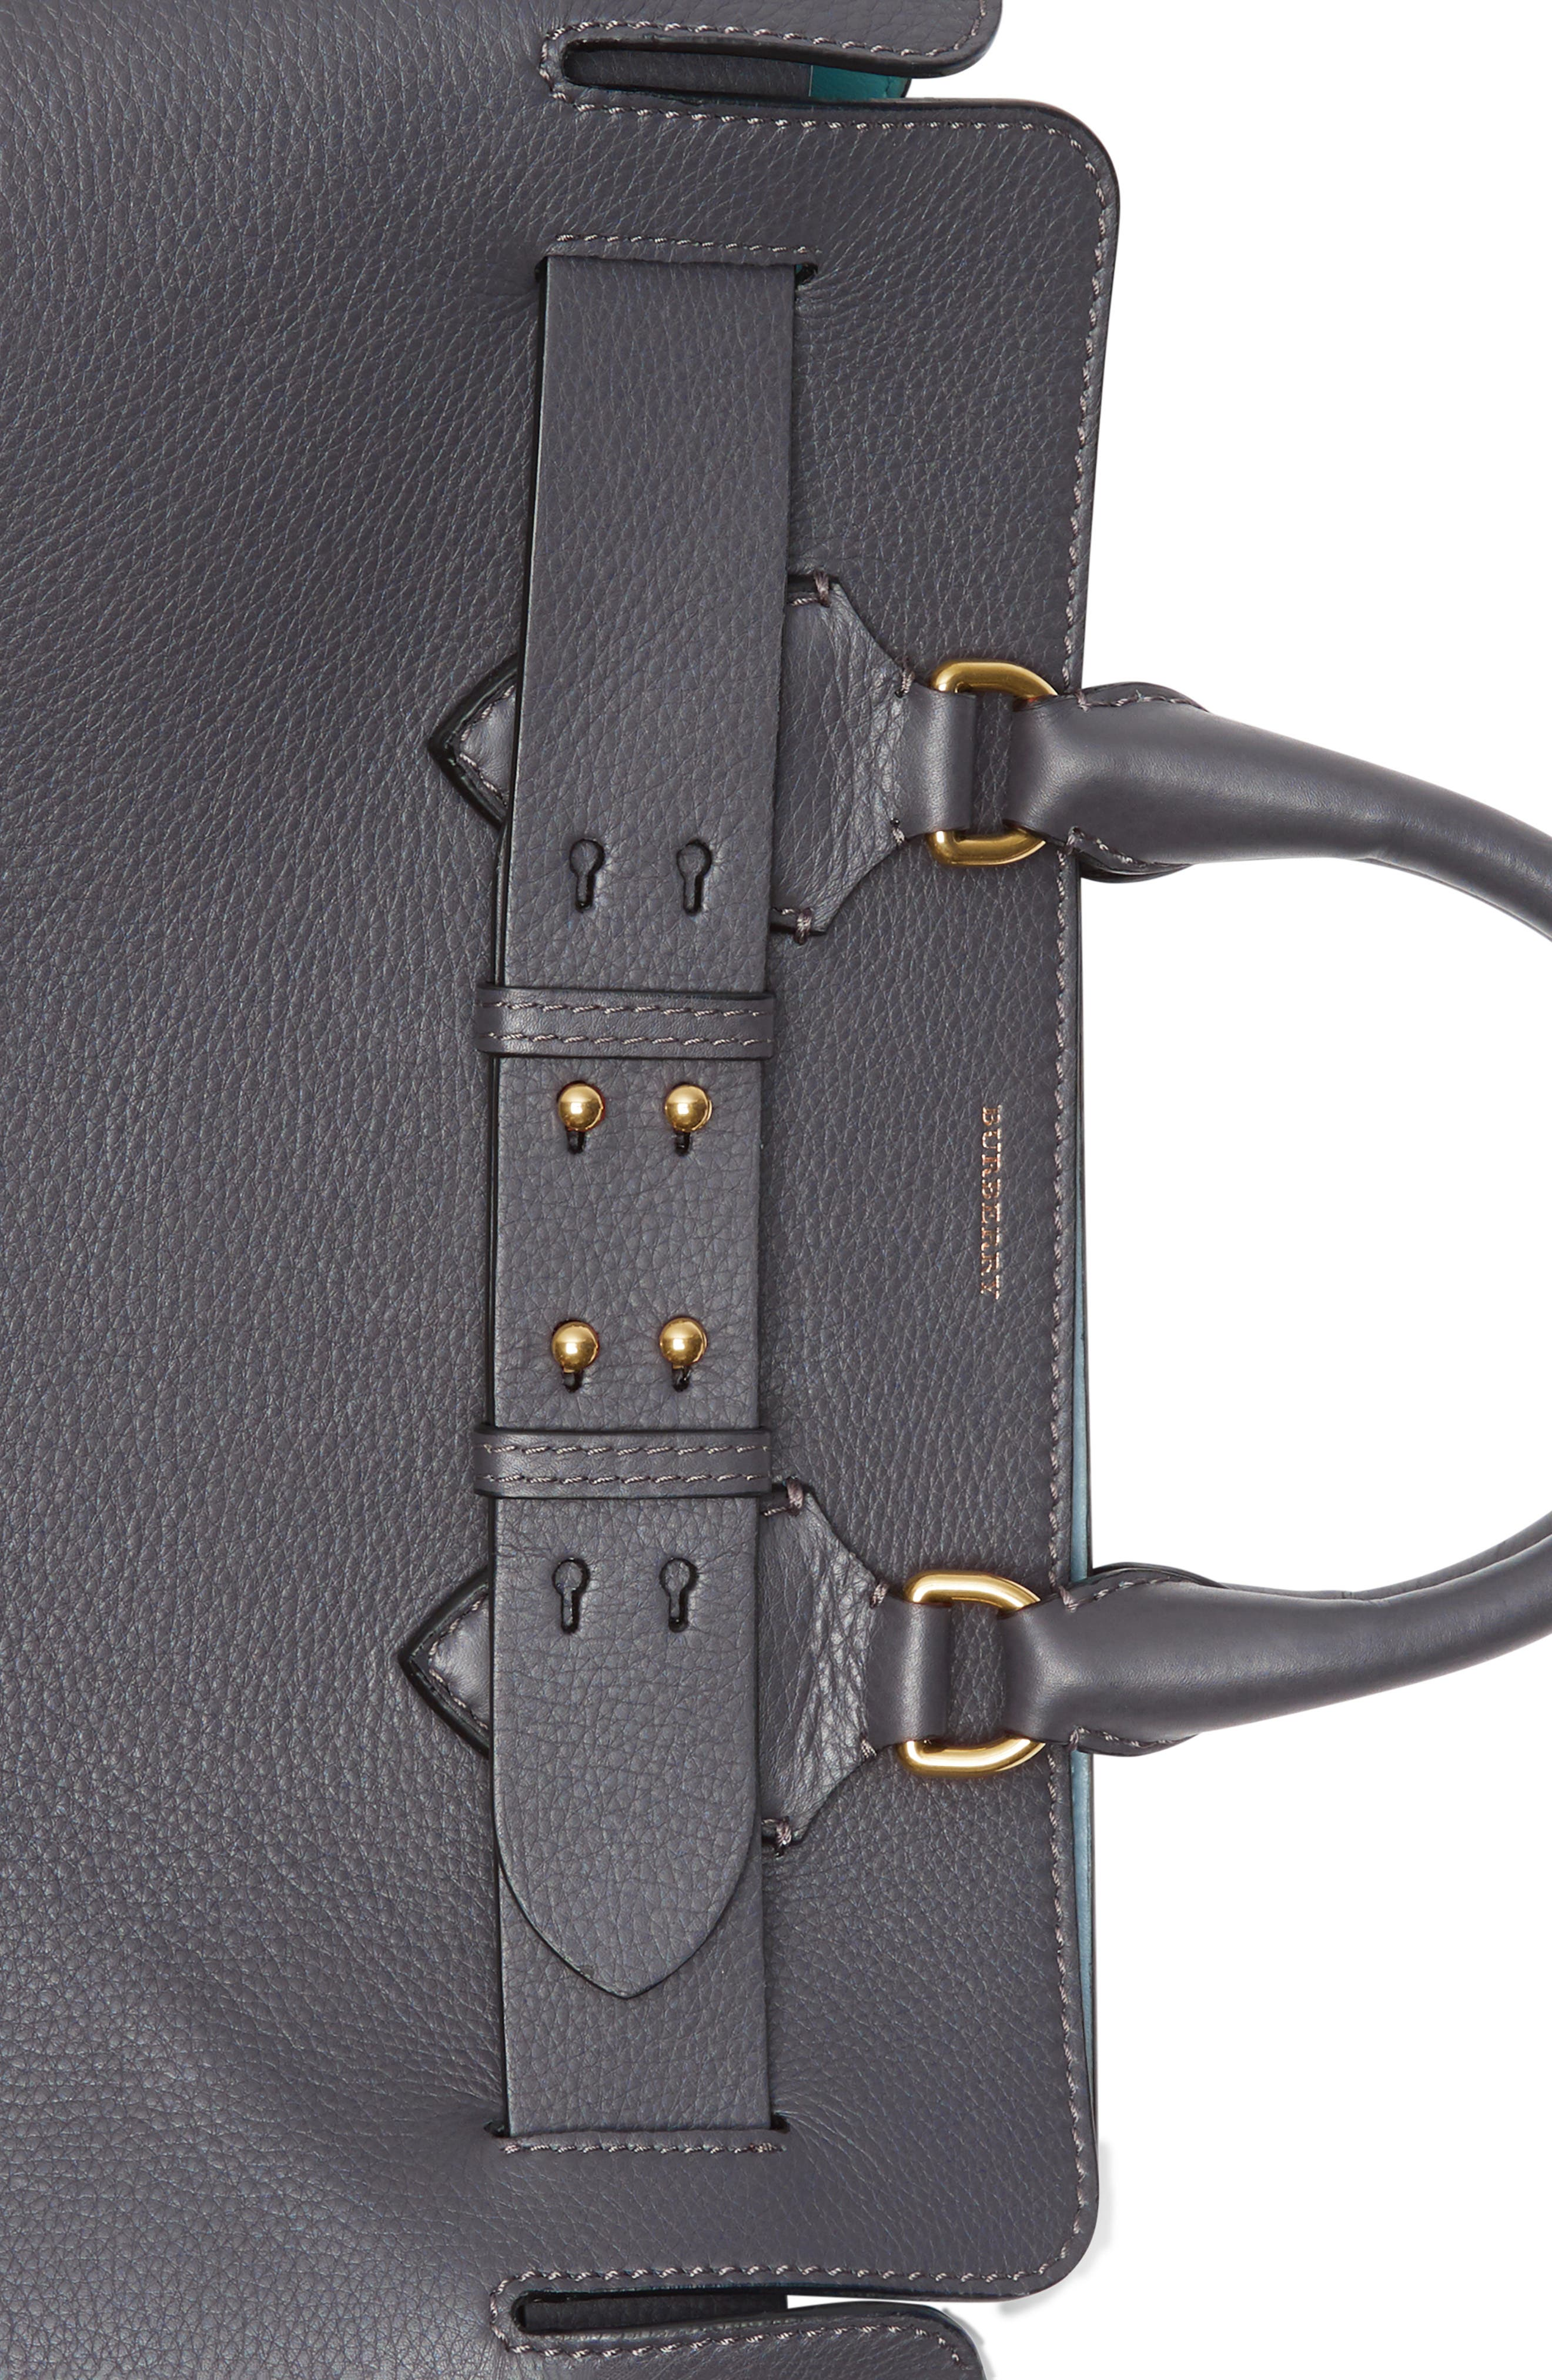 Medium Leather Belted Bag,                             Alternate thumbnail 8, color,                             CHARCOAL GREY